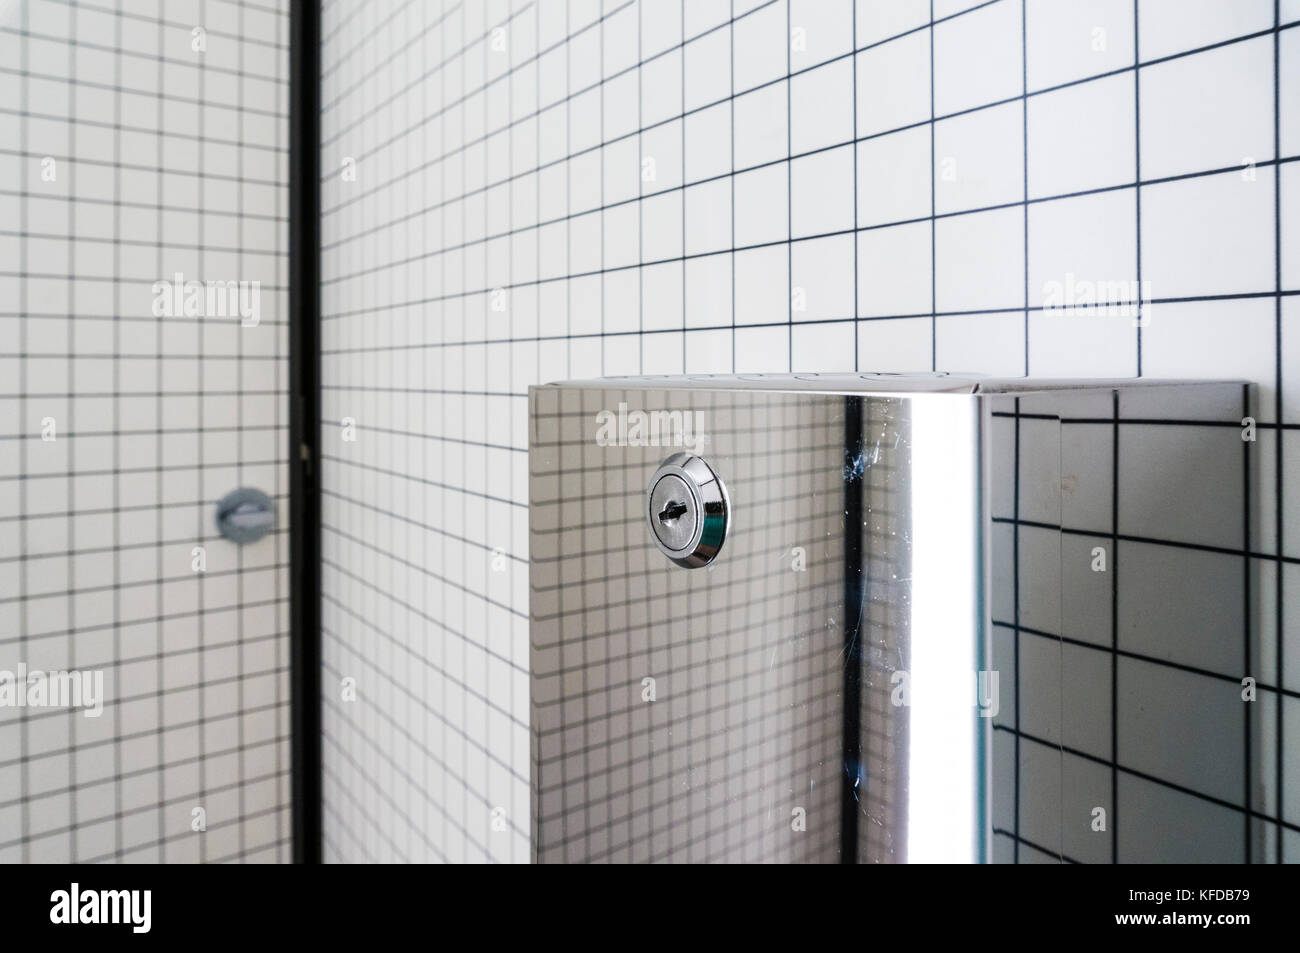 Tiles With Grout Stock Photos & Tiles With Grout Stock Images - Alamy